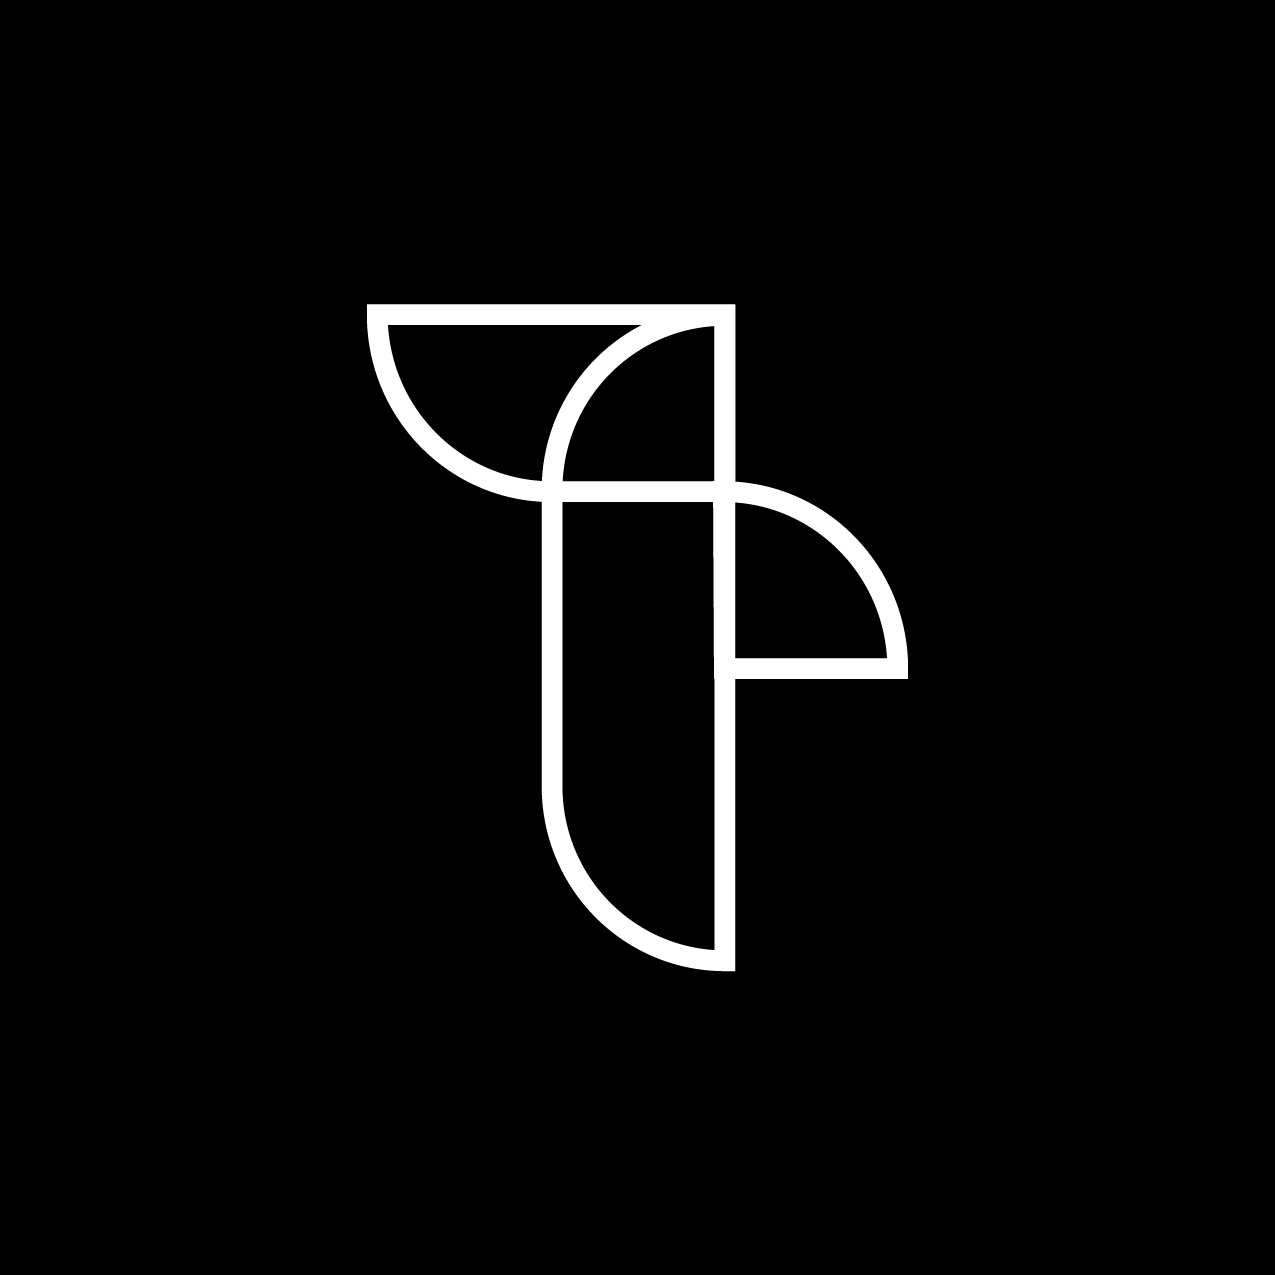 Letter T2 Design by Furia